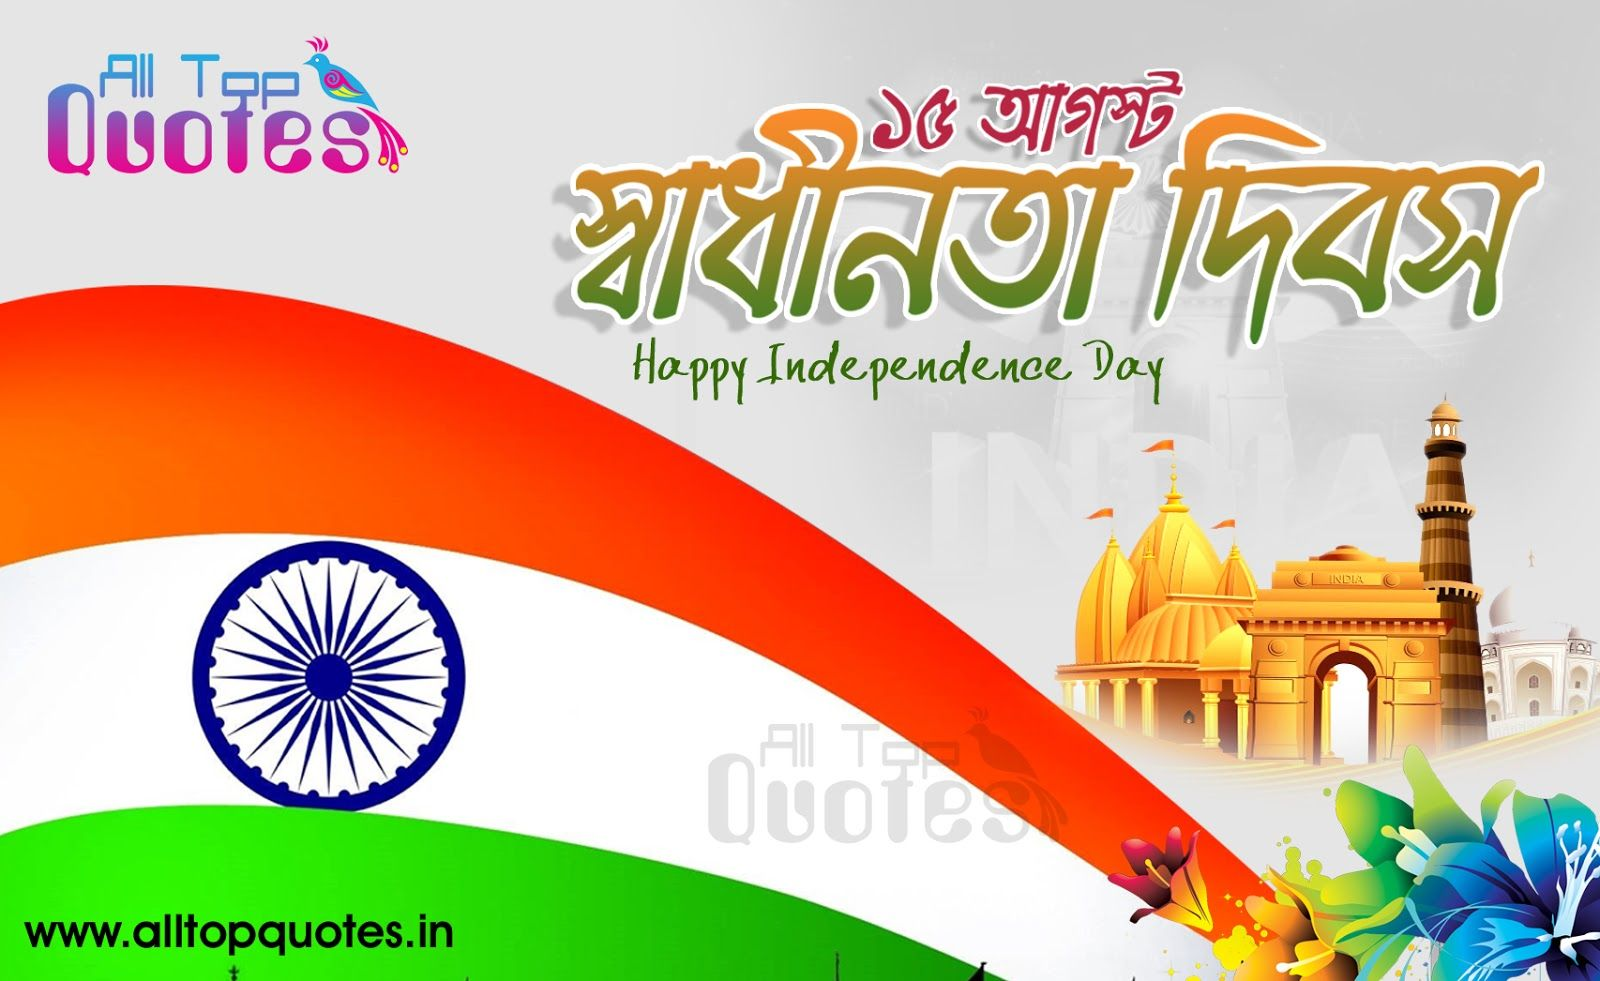 Happy independence bengali quotes free images 15aug alltopquotes best republic day wishes images bengali kristyandbryce Gallery